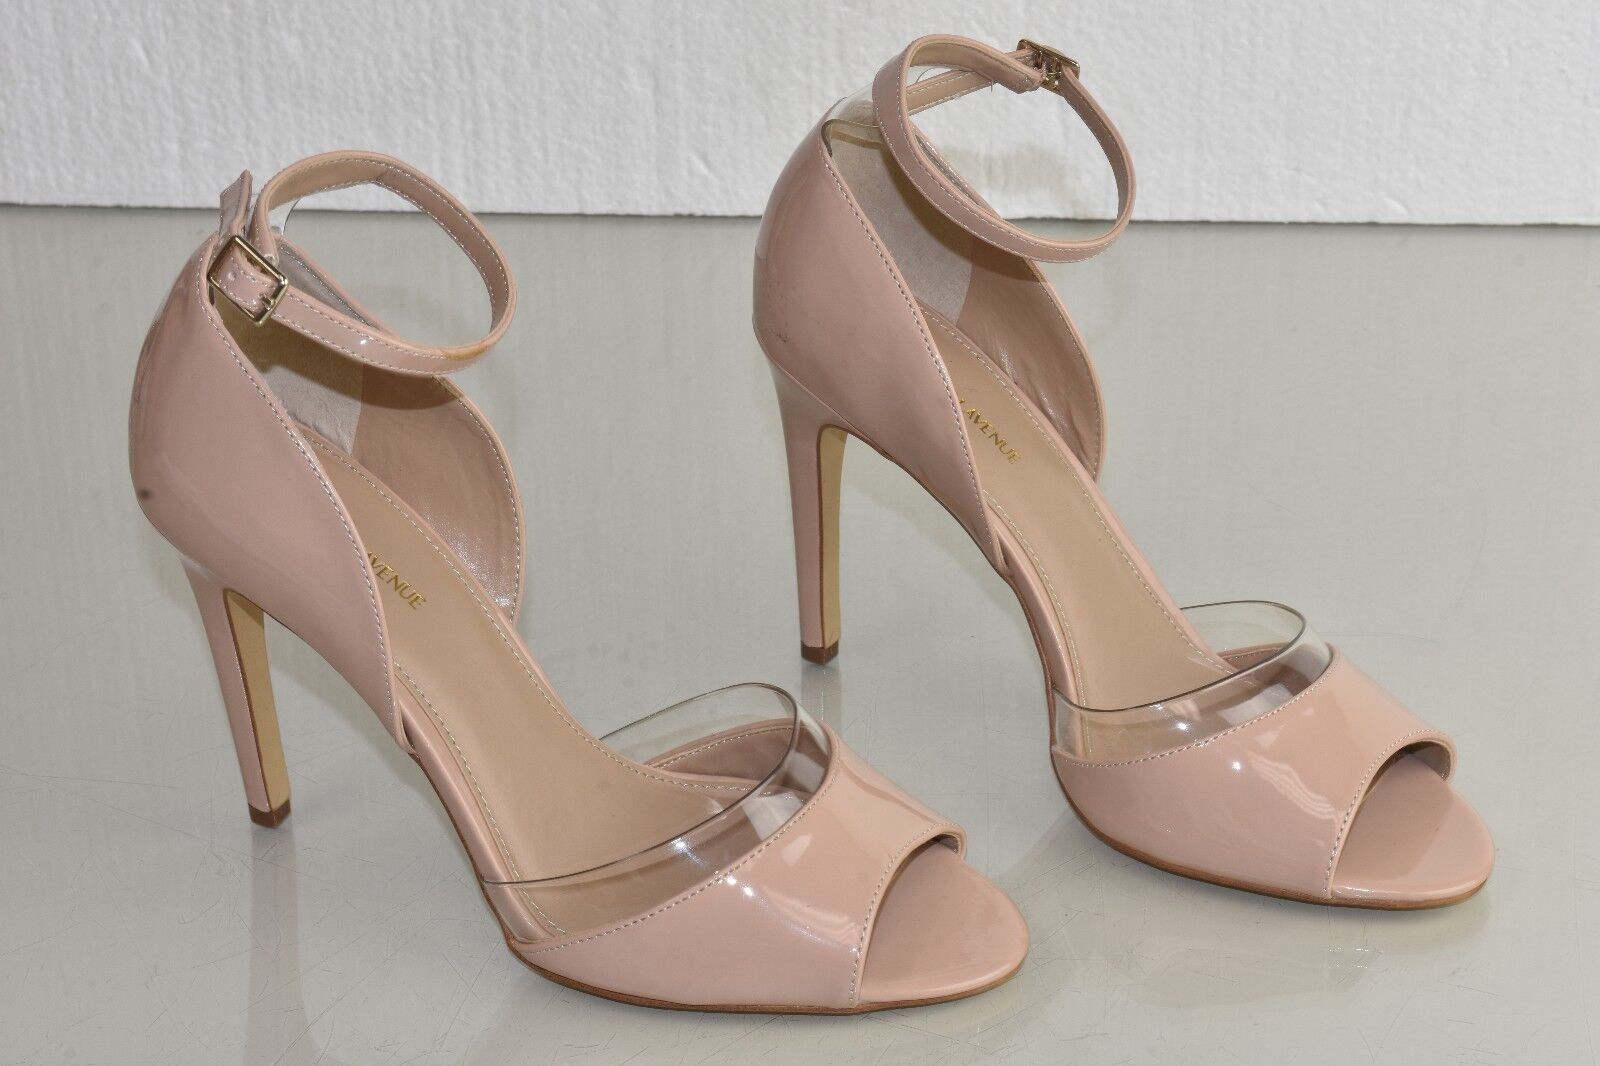 New Saks Fifth Avenue Sandals Ankle Strap NUDE Beige Patent Leather PVC shoes 9